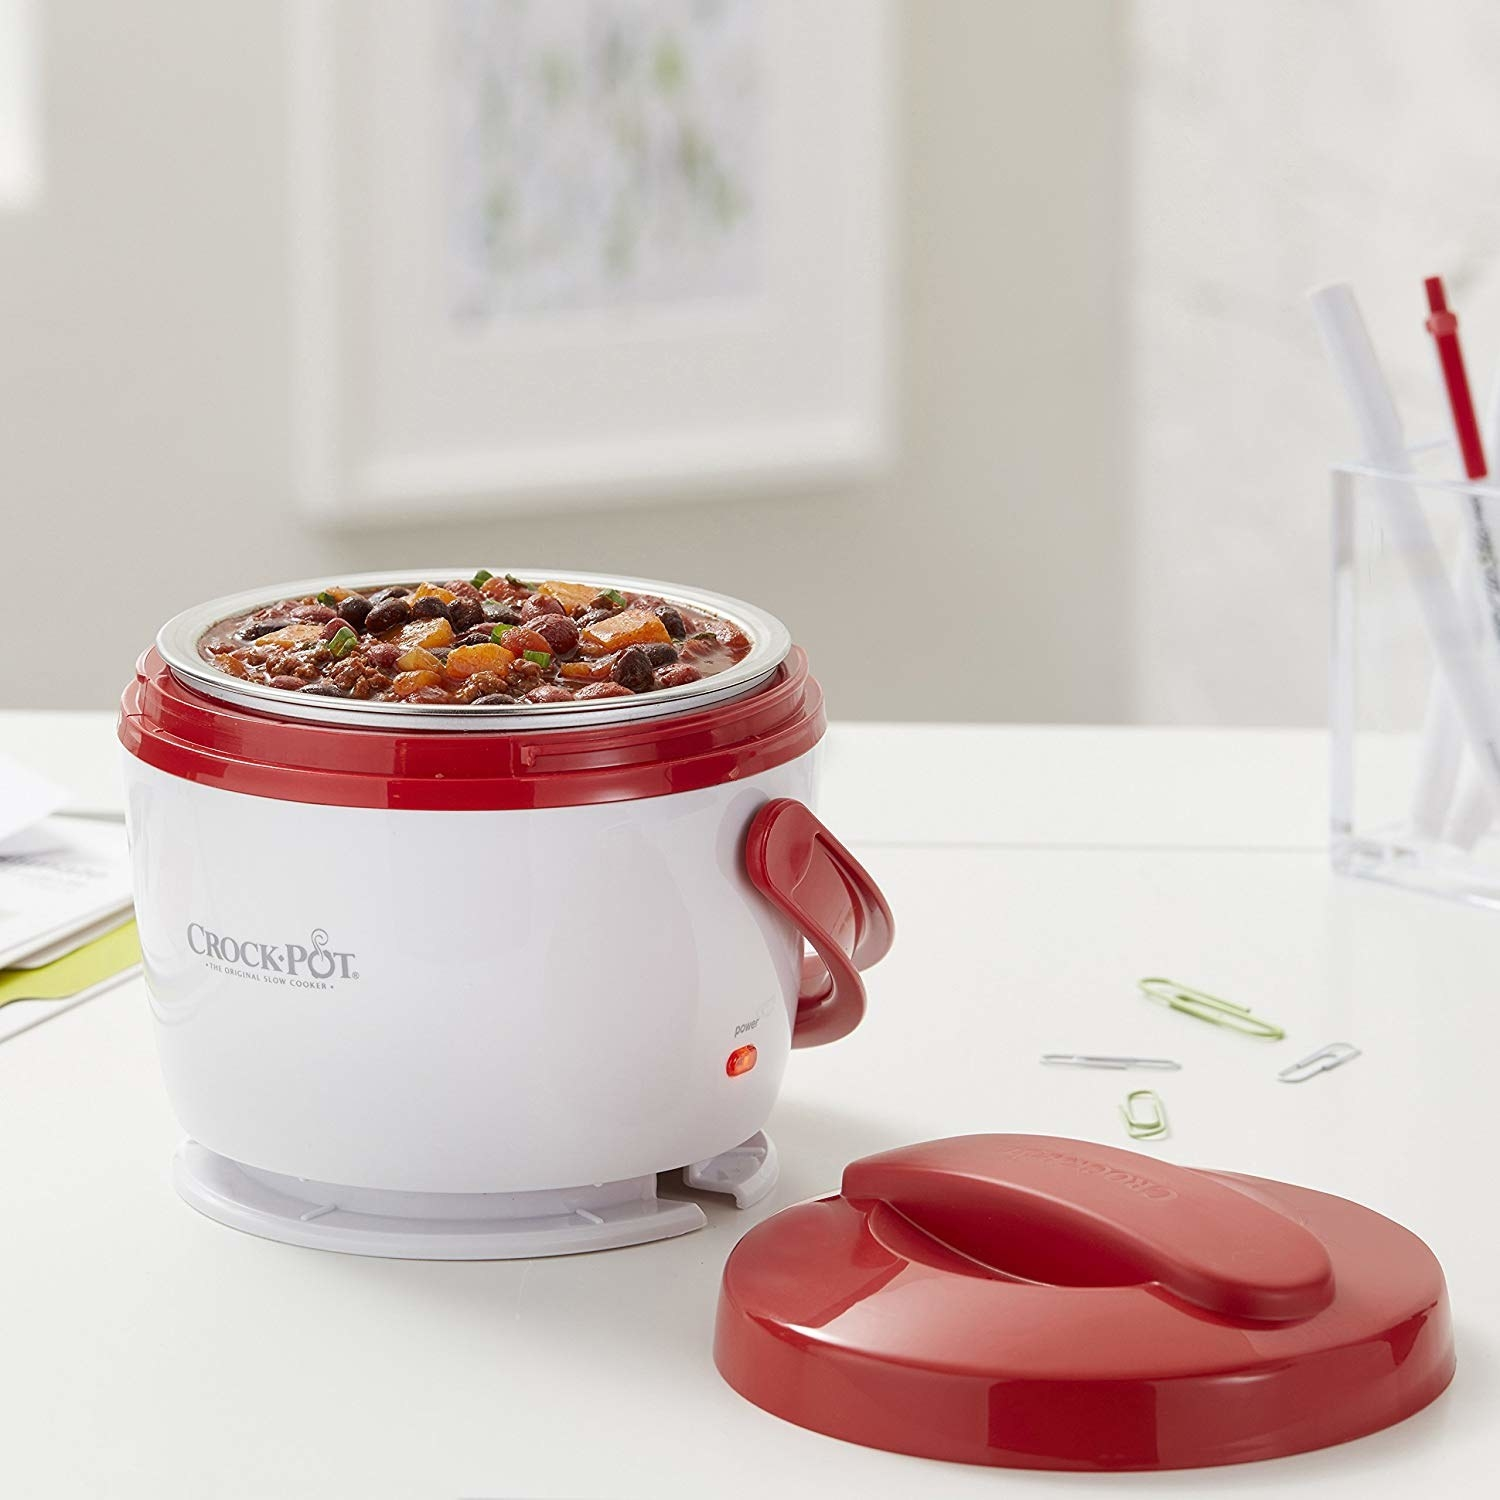 "It has a 20-ounce capacity, a dishwasher-safe removable container, and a spill-proof lid.Promising review: ""Love this food warmer. I use it for lunch and dinner at work every day. I meal prep by freezing big batches of food in small freezer bags and place them inside of coffee mugs so the food is in a shape that will fit in the Crock-Pot. I let the food cook from frozen for about two hours, and it comes out perfectly."" —Karen w.Get it from Amazon for $21.99+ (available in four colors)."